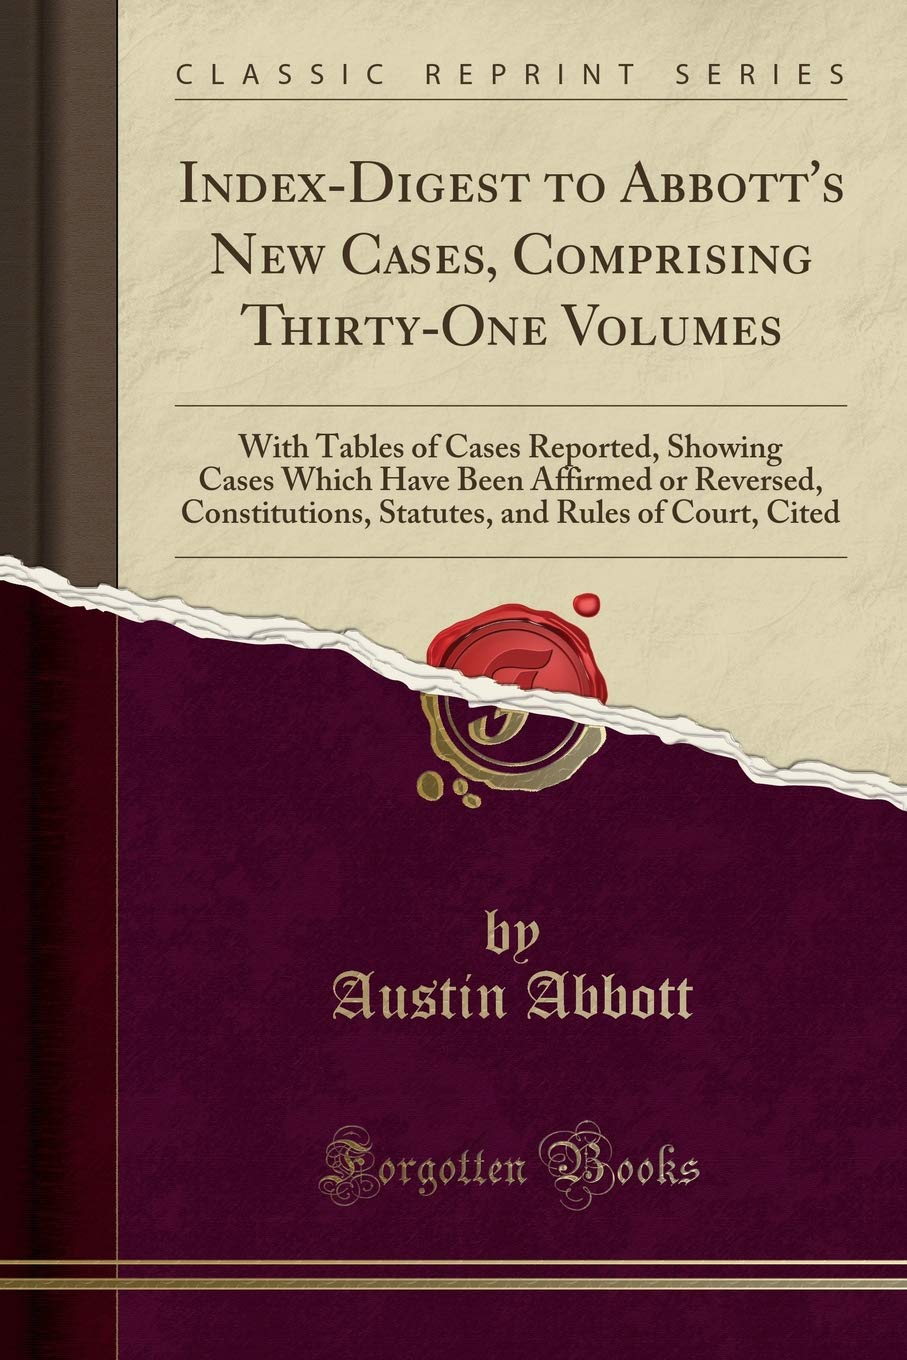 Read Online Index-Digest to Abbott's New Cases, Comprising Thirty-One Volumes: With Tables of Cases Reported, Showing Cases Which Have Been Affirmed or Reversed, ... and Rules of Court, Cited (Classic Reprint) PDF